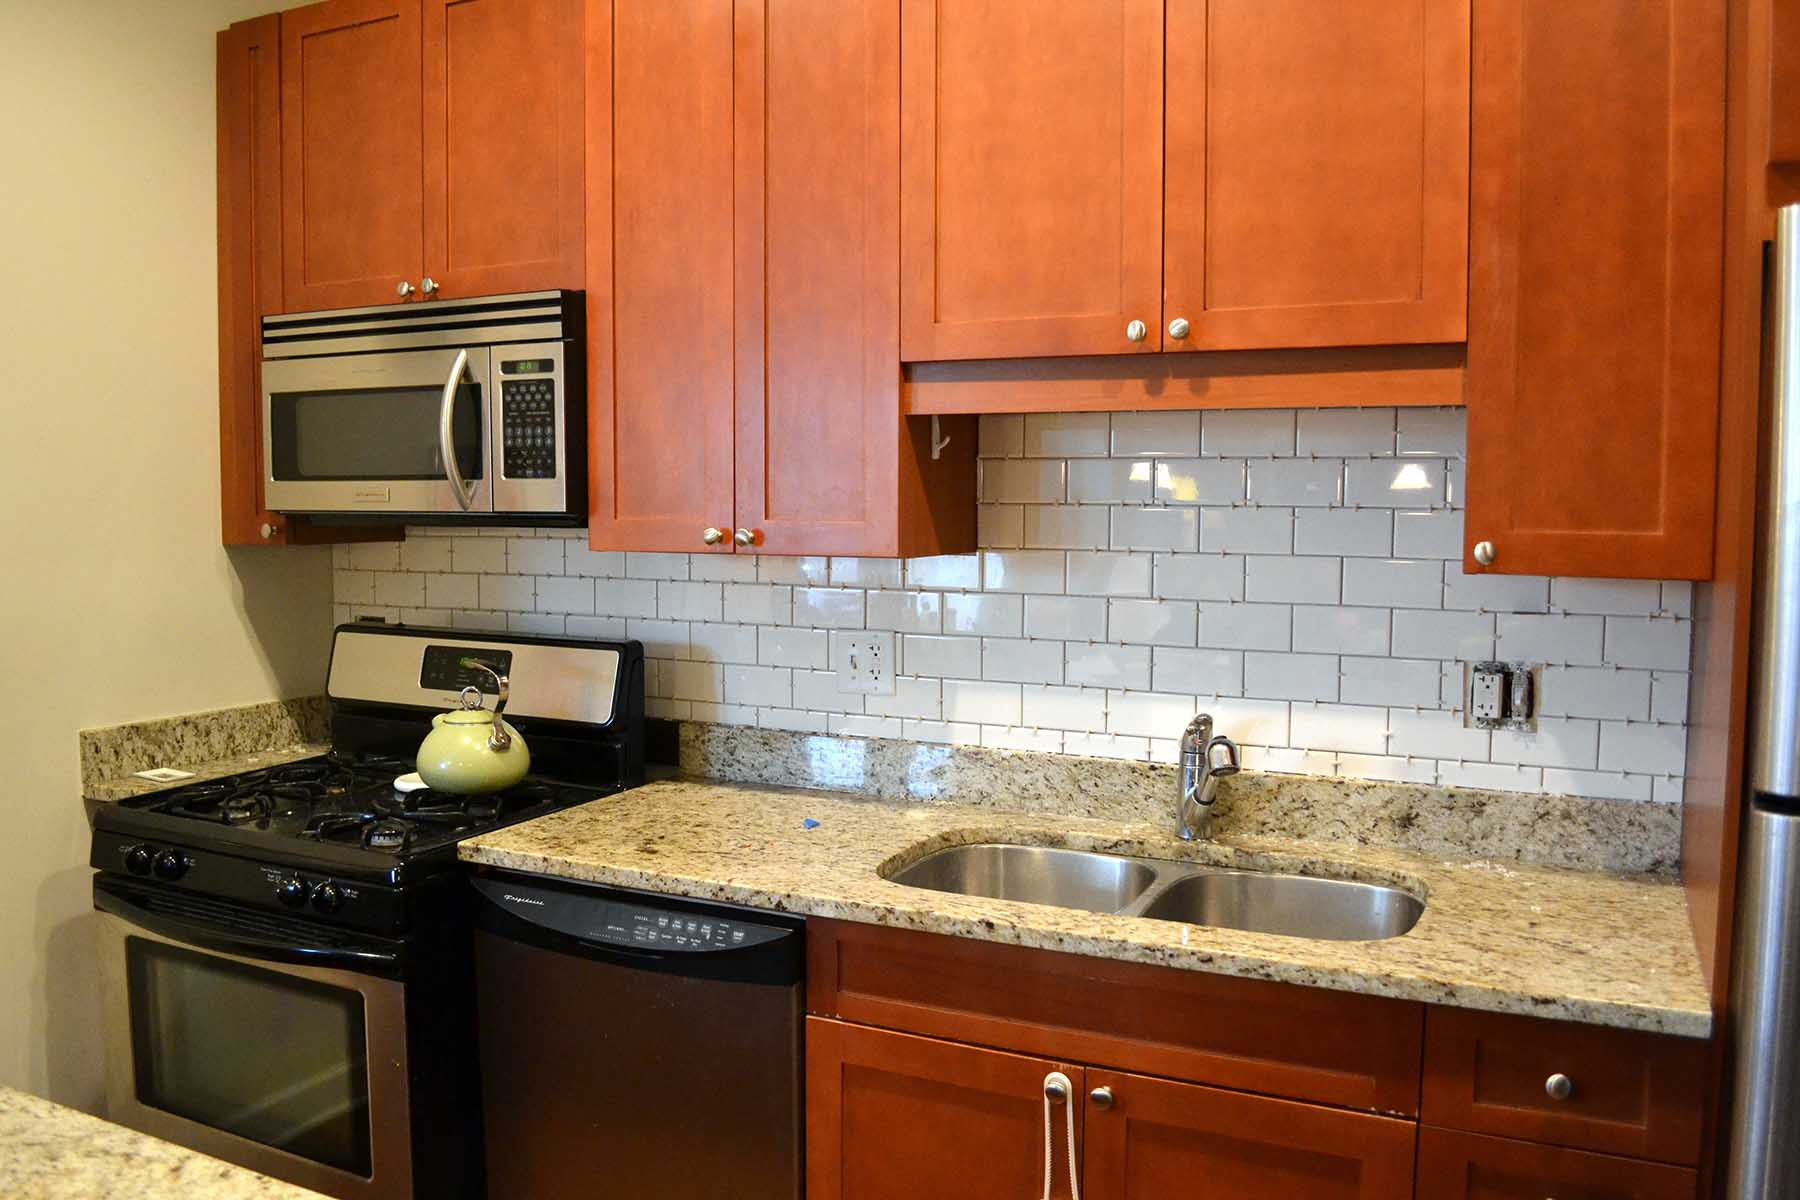 Simple Brown Tile Designs for Backsplash